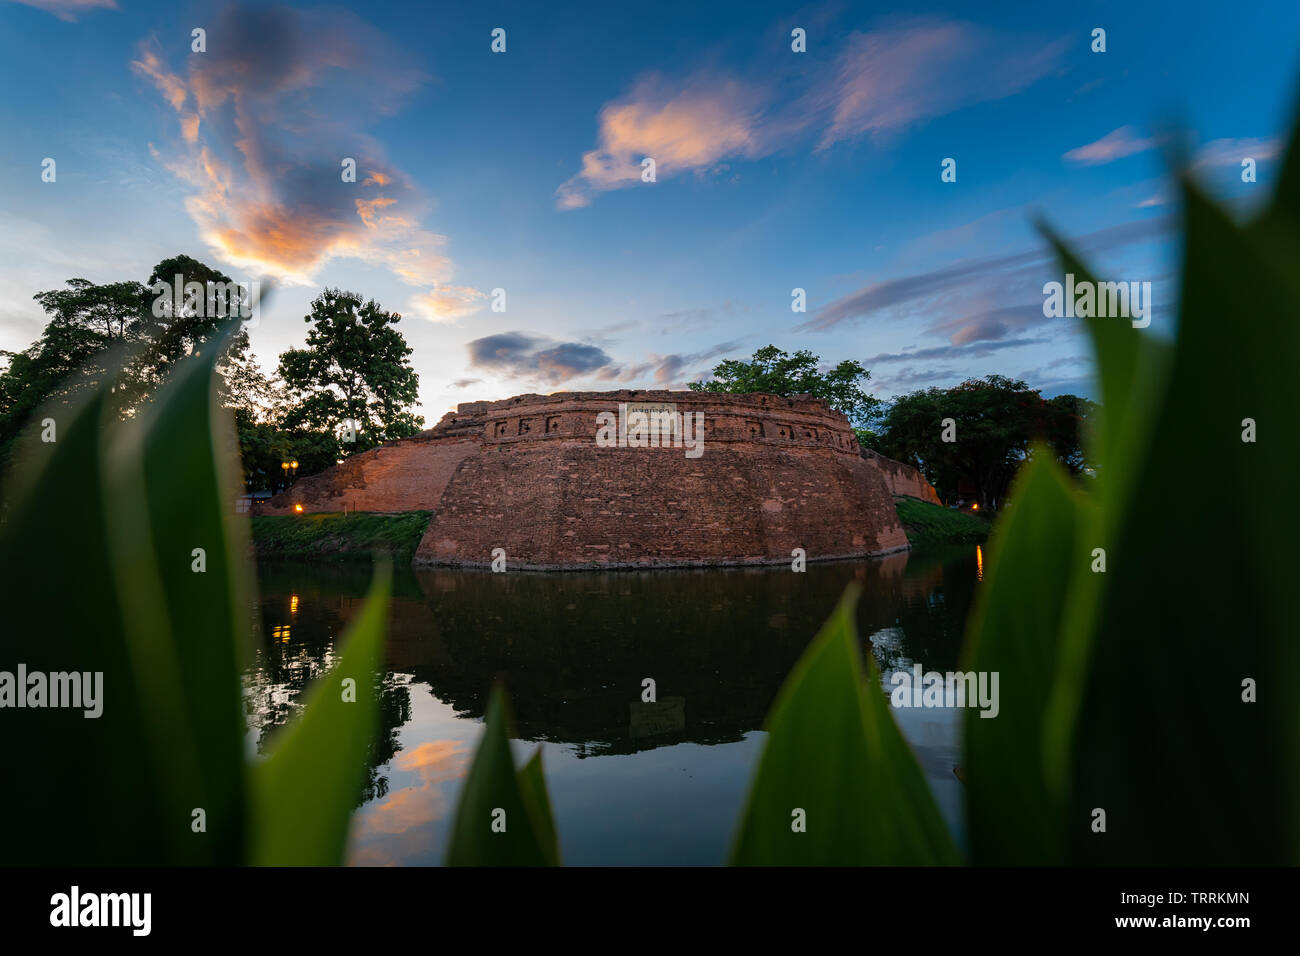 Chiang Mai ancient city wall and moats in sunset sky - Stock Image